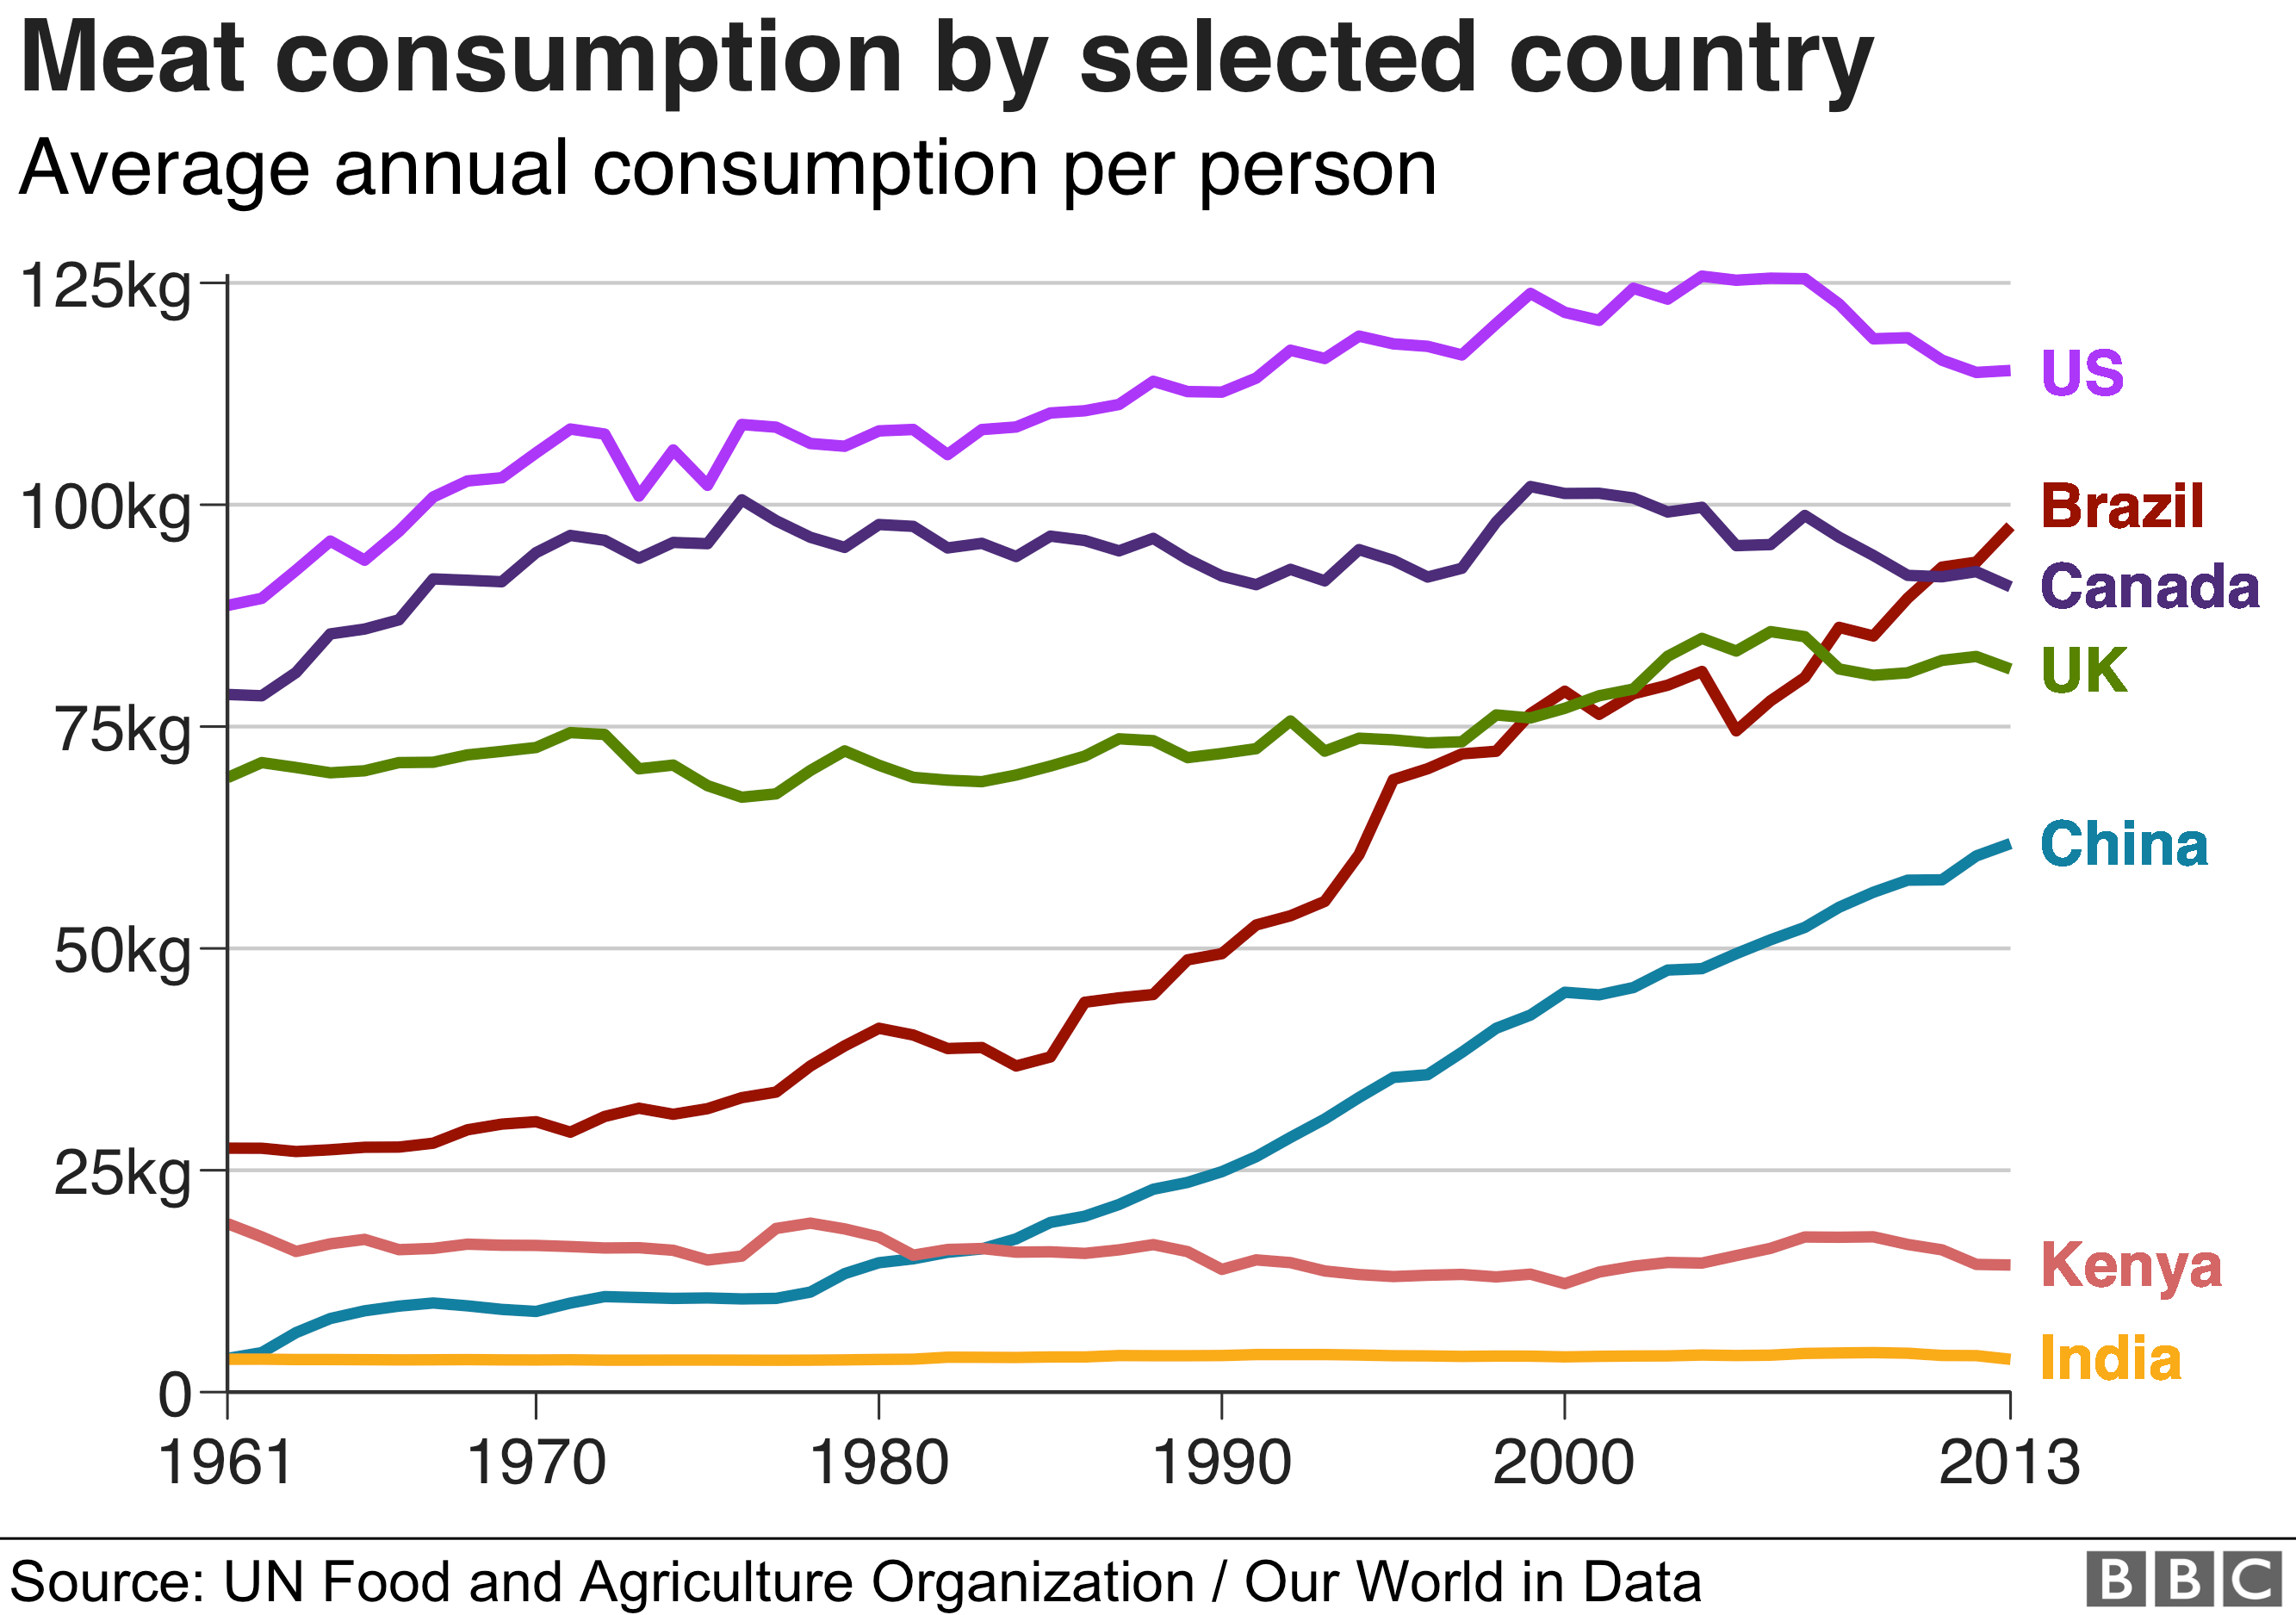 Meat consumption by selected country